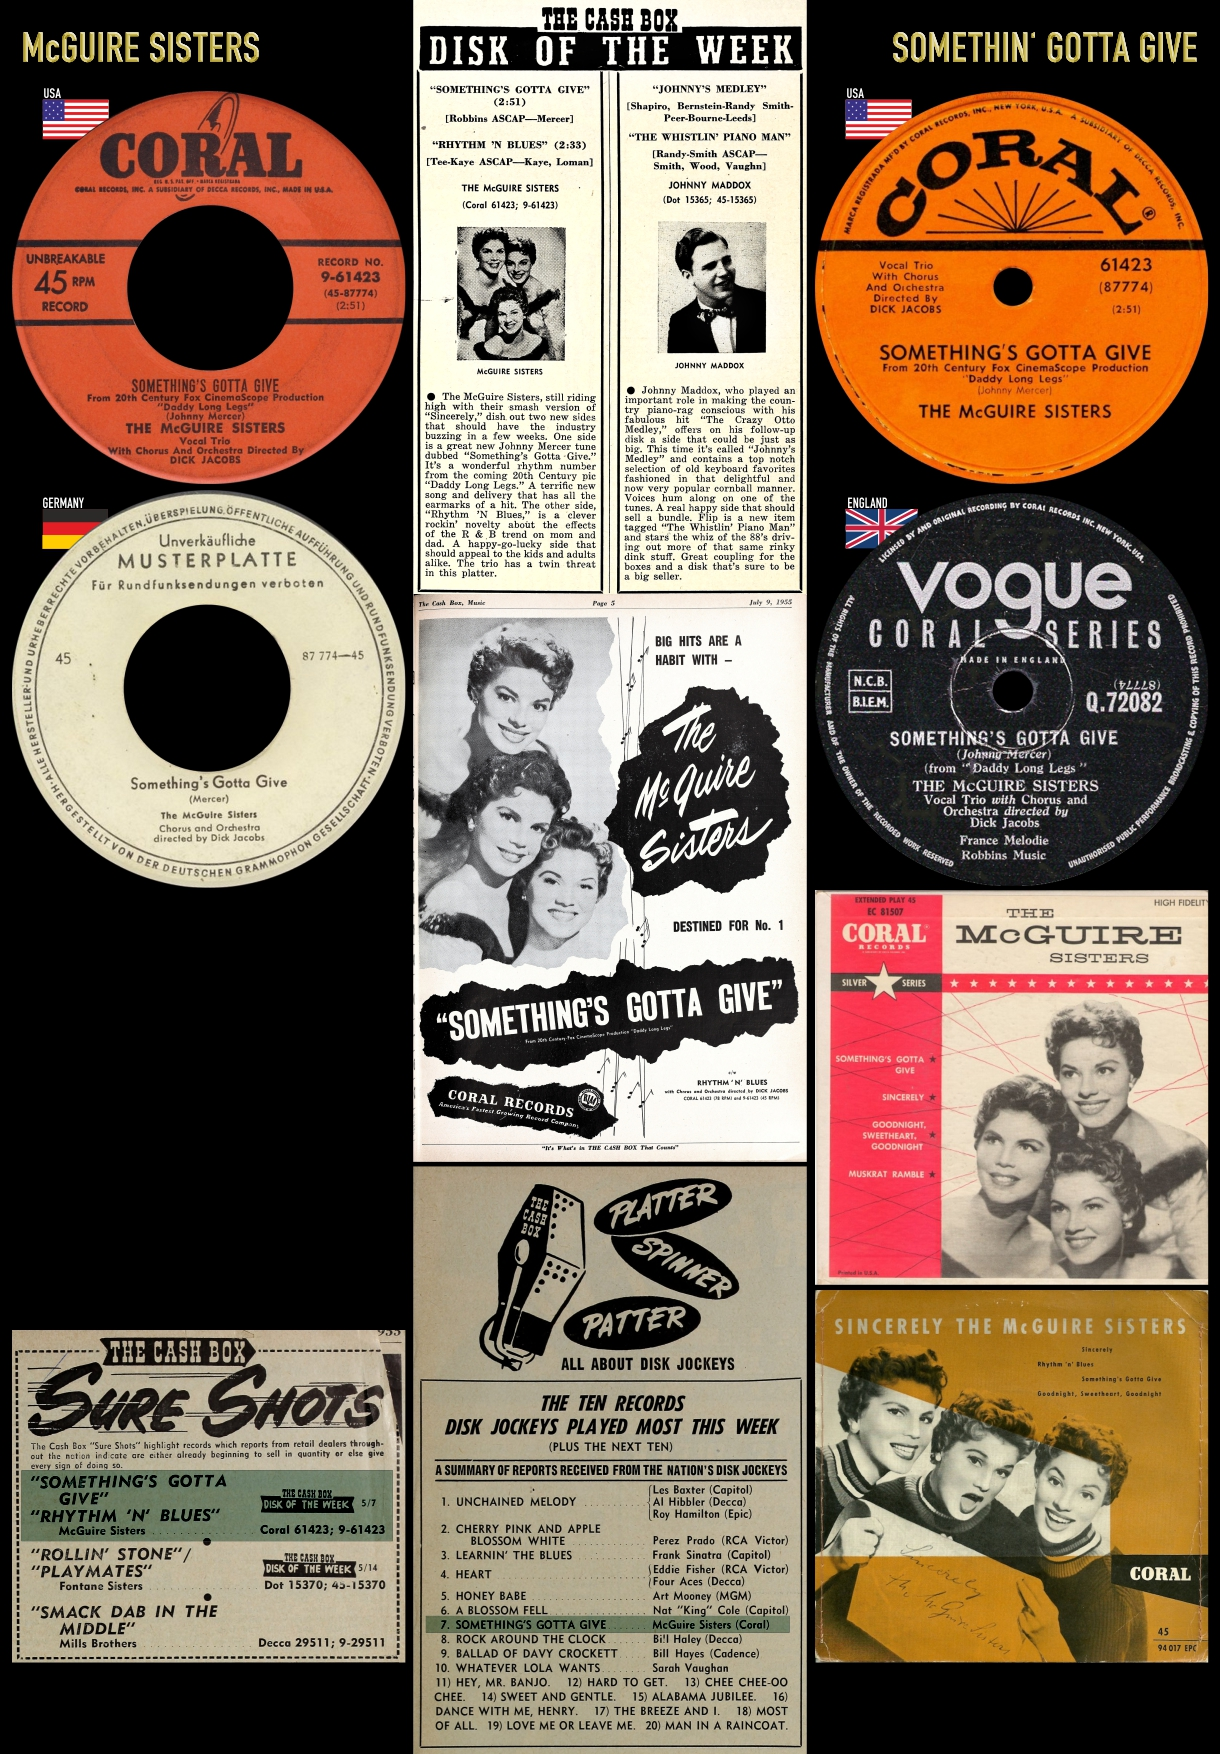 550604_McGuire Sisters_Somethin' Gotta Give